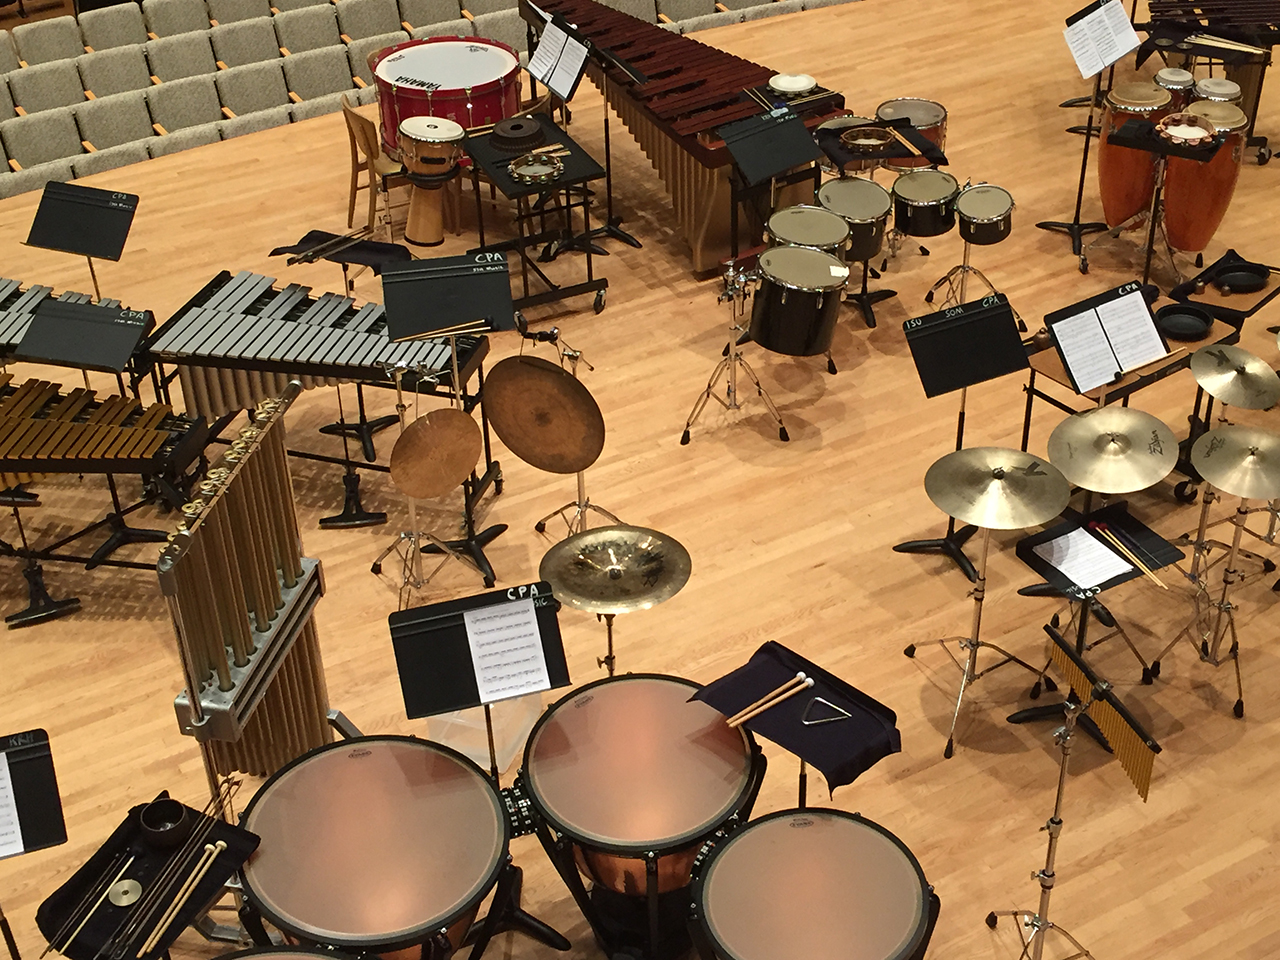 image of percussion instruments on a stage